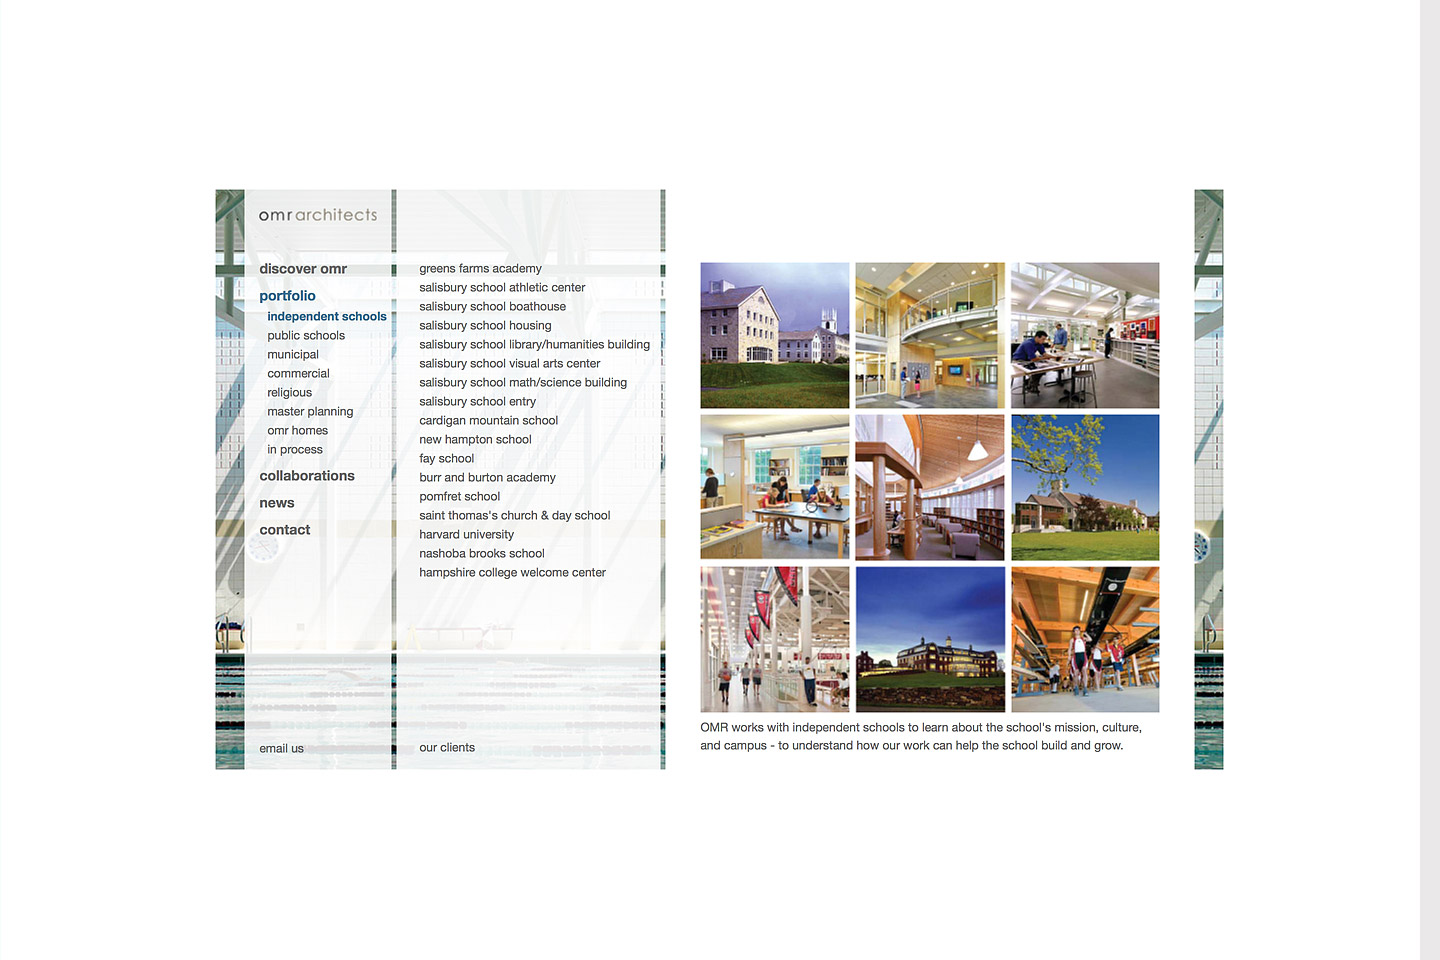 a screen capture of the omr architects portfolio landing page for their independent schools projects, featuring 9 thumbnail images of various independent school spaces